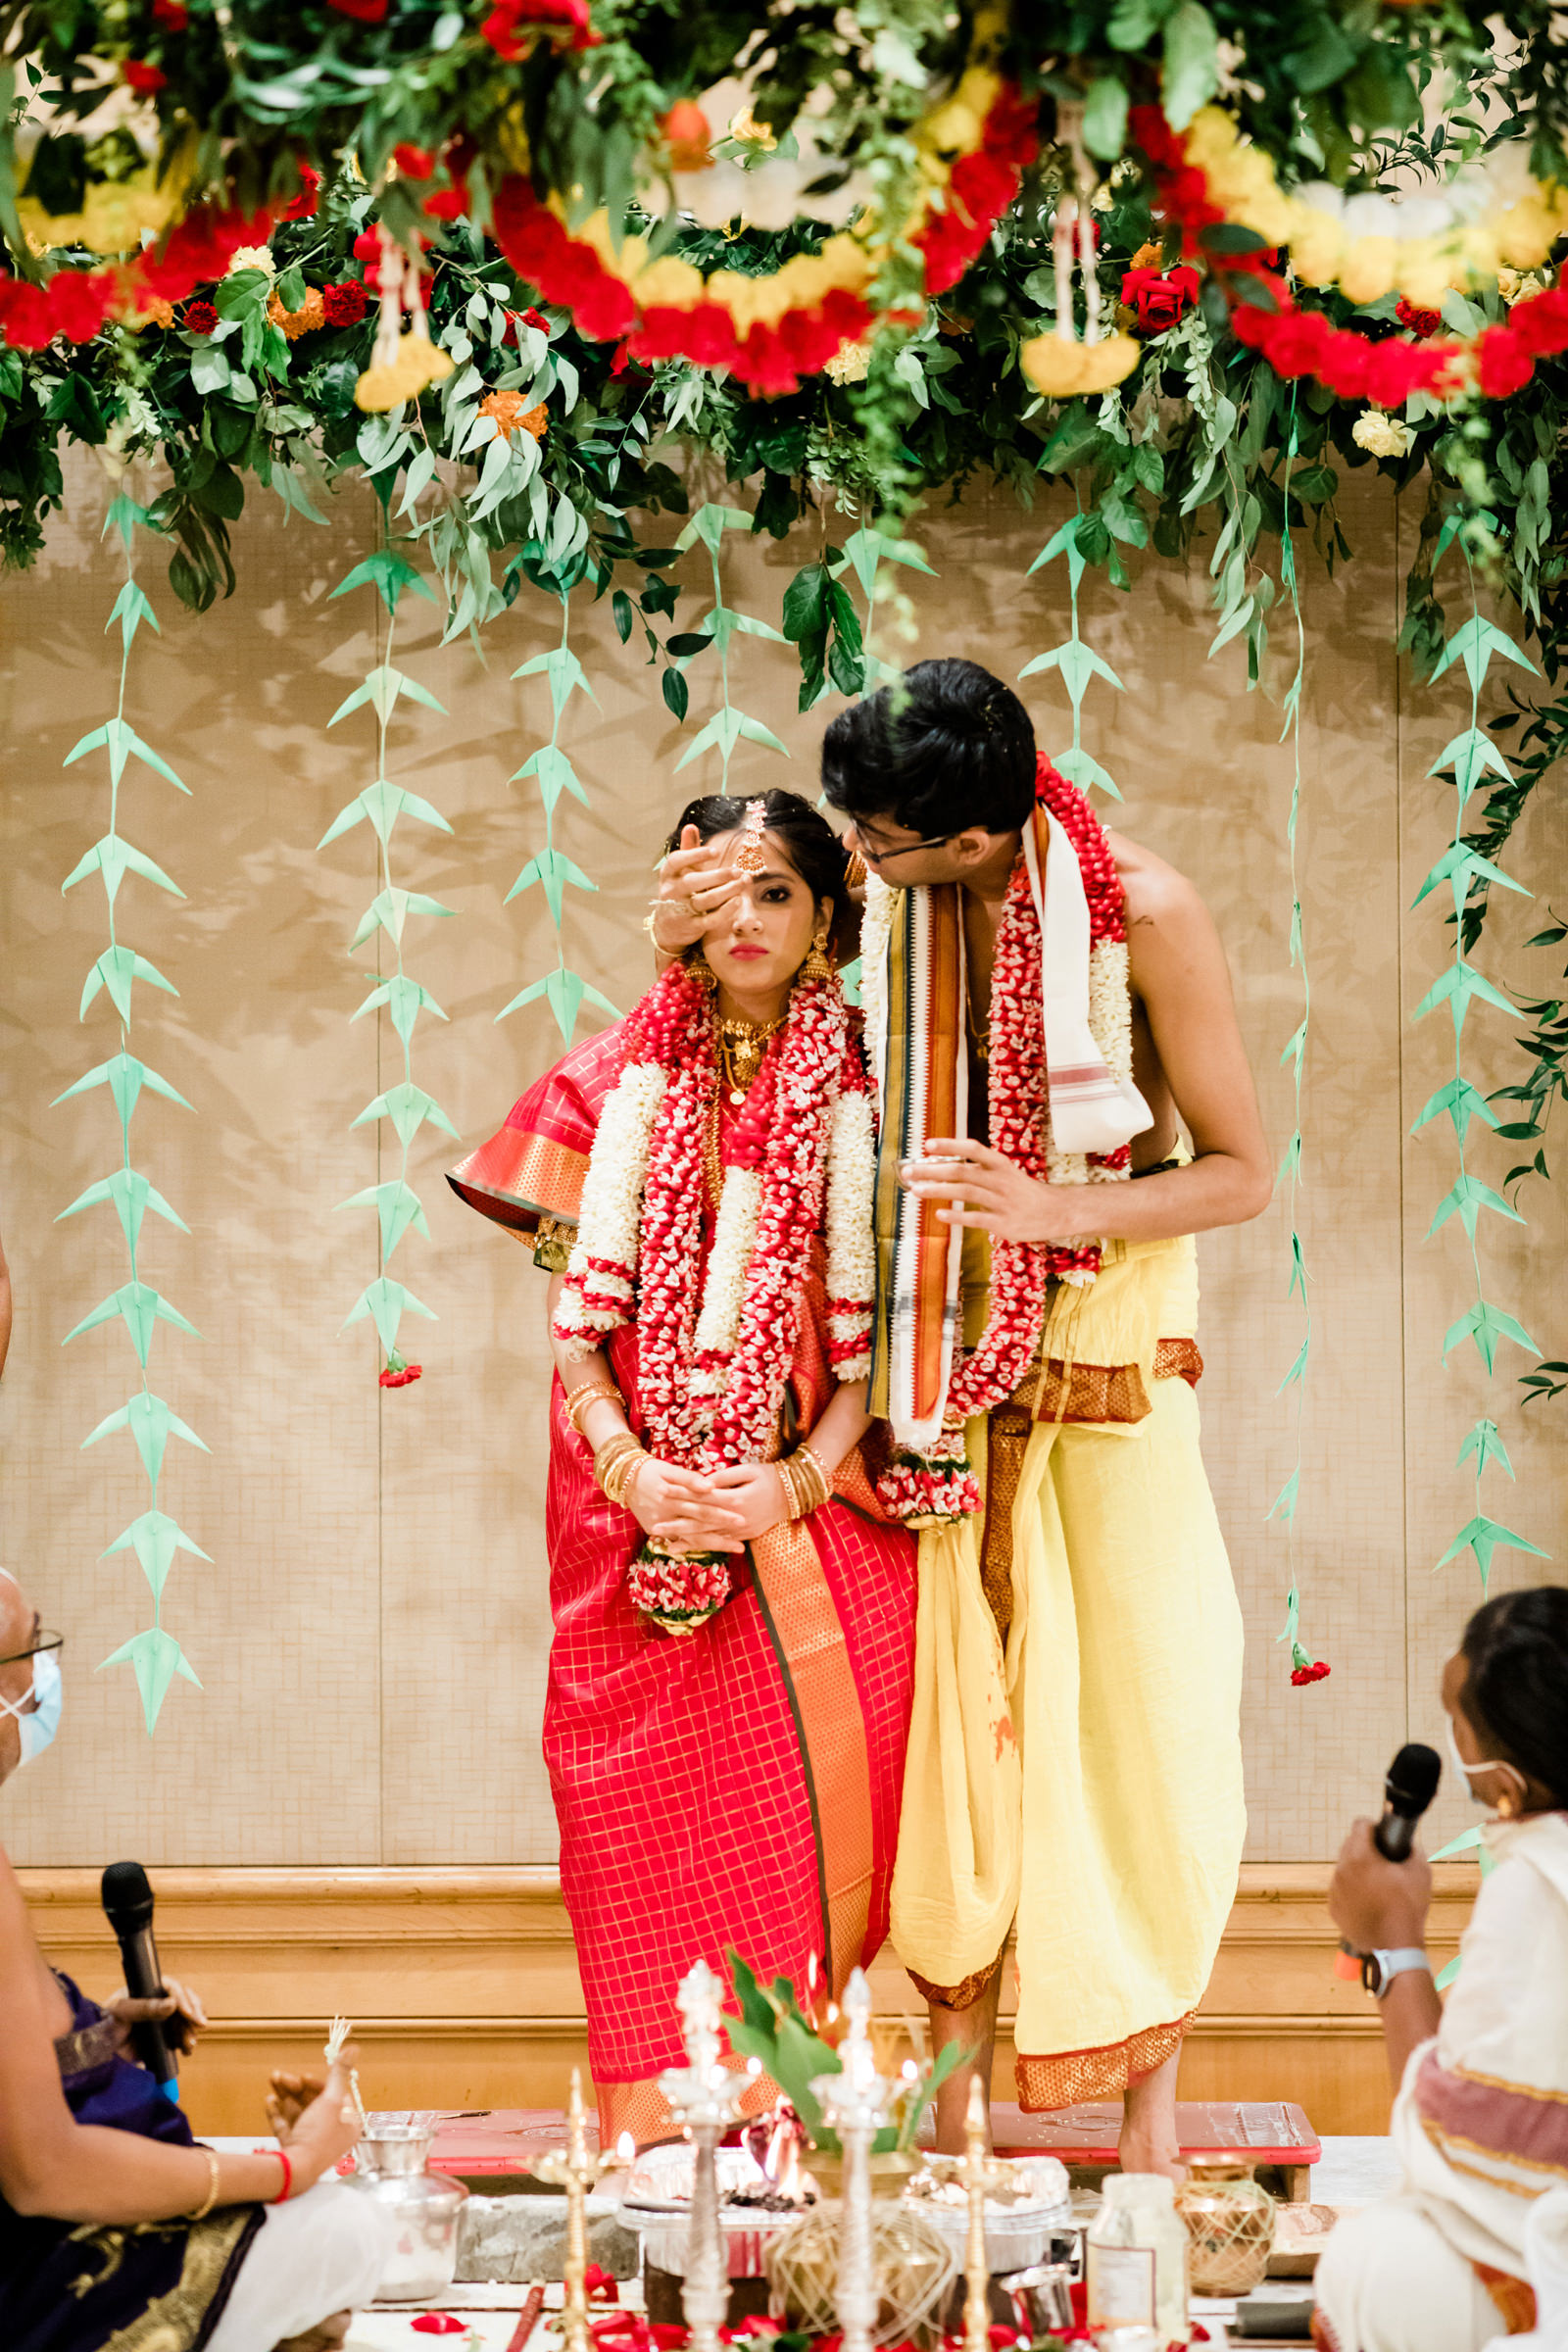 Groom covers bride eye at Indian ceremony - photo by Into Dust Photography